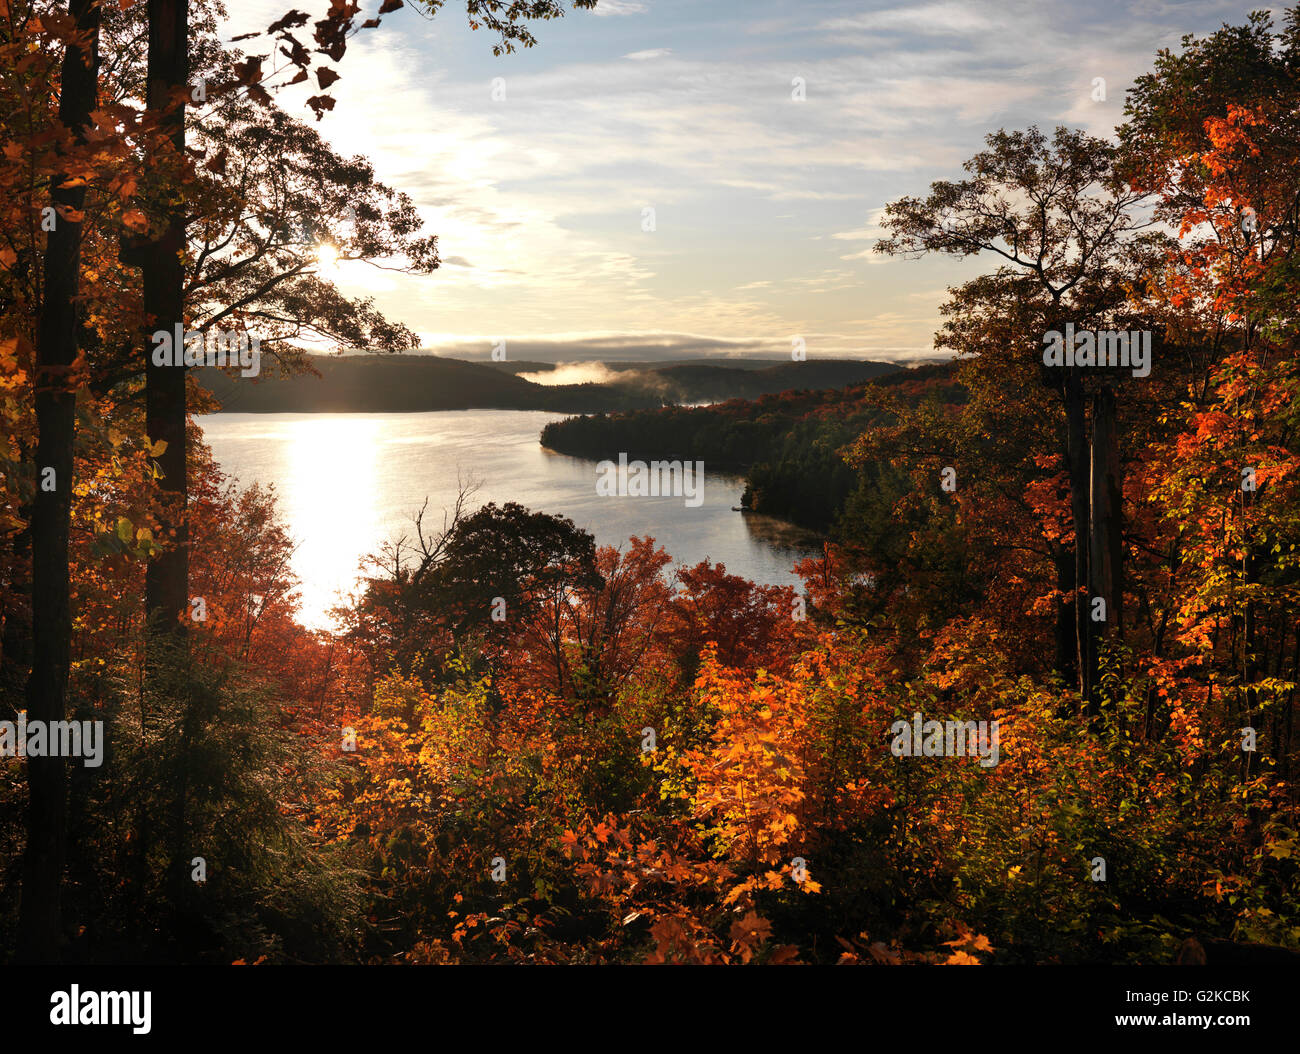 Smoke Lake in autumn, Algonquin Provincial Park, Ontario Province, Canada - Stock Image